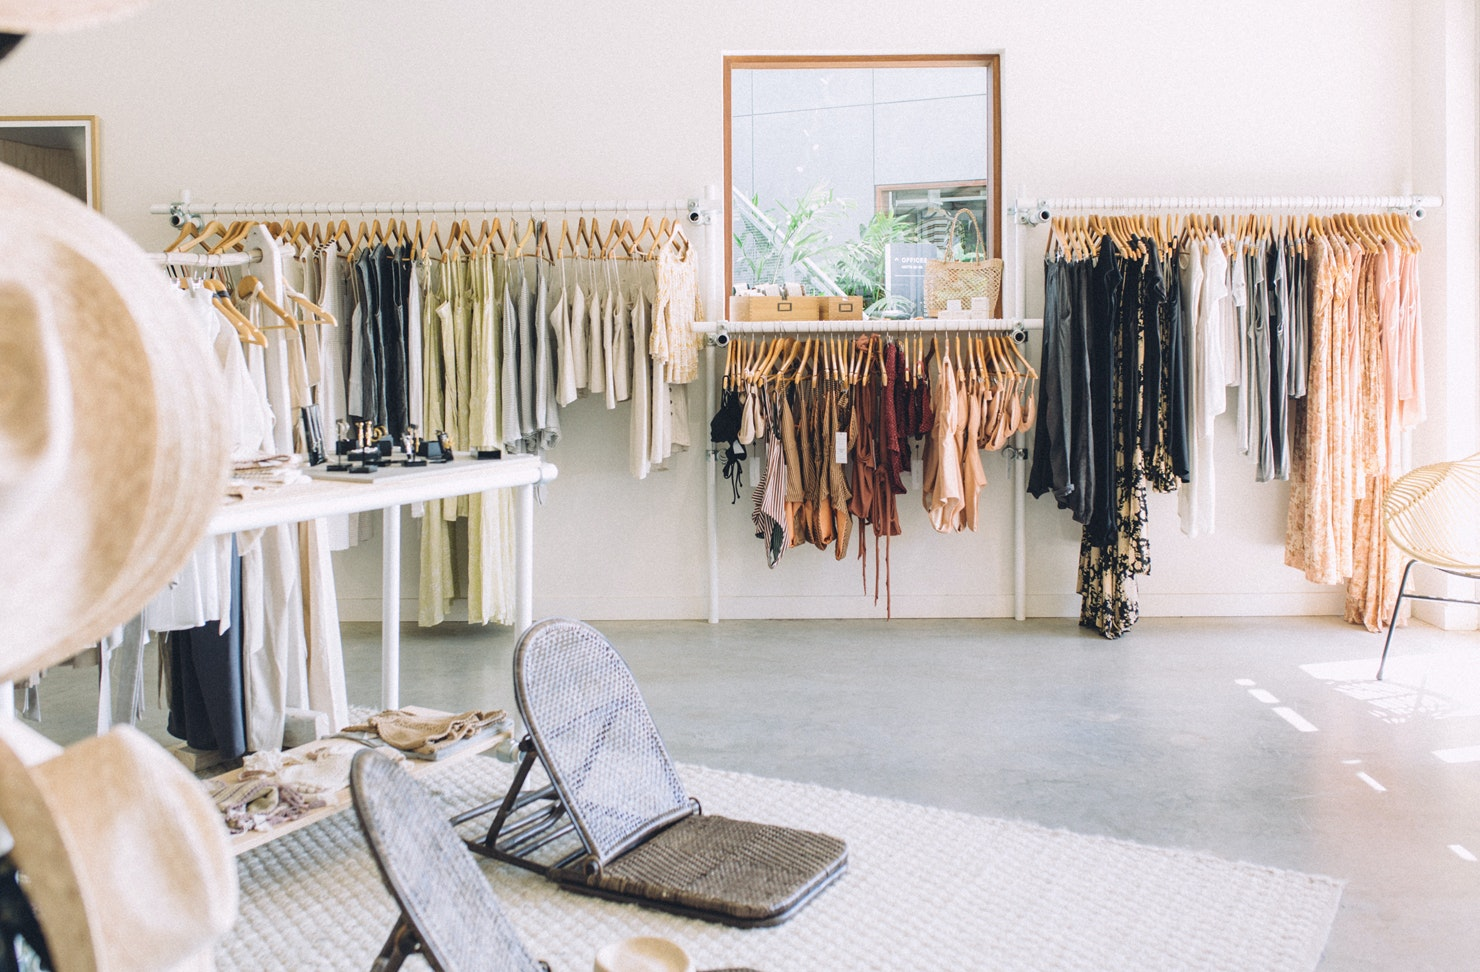 The Interior of Habitat Collective homewares store in Byron Bay.